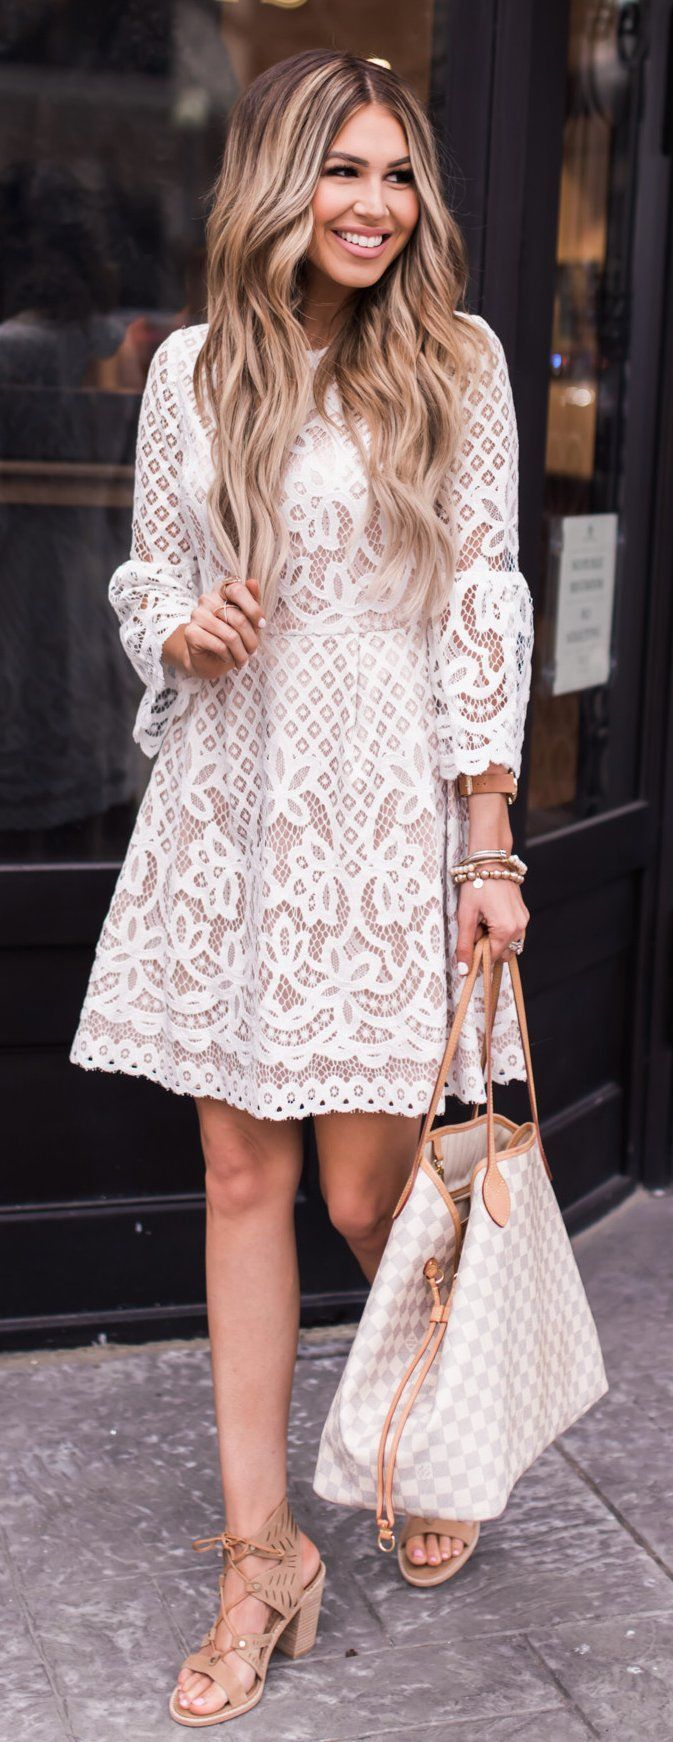 14 inspiring white lace dress outfits for all seasons